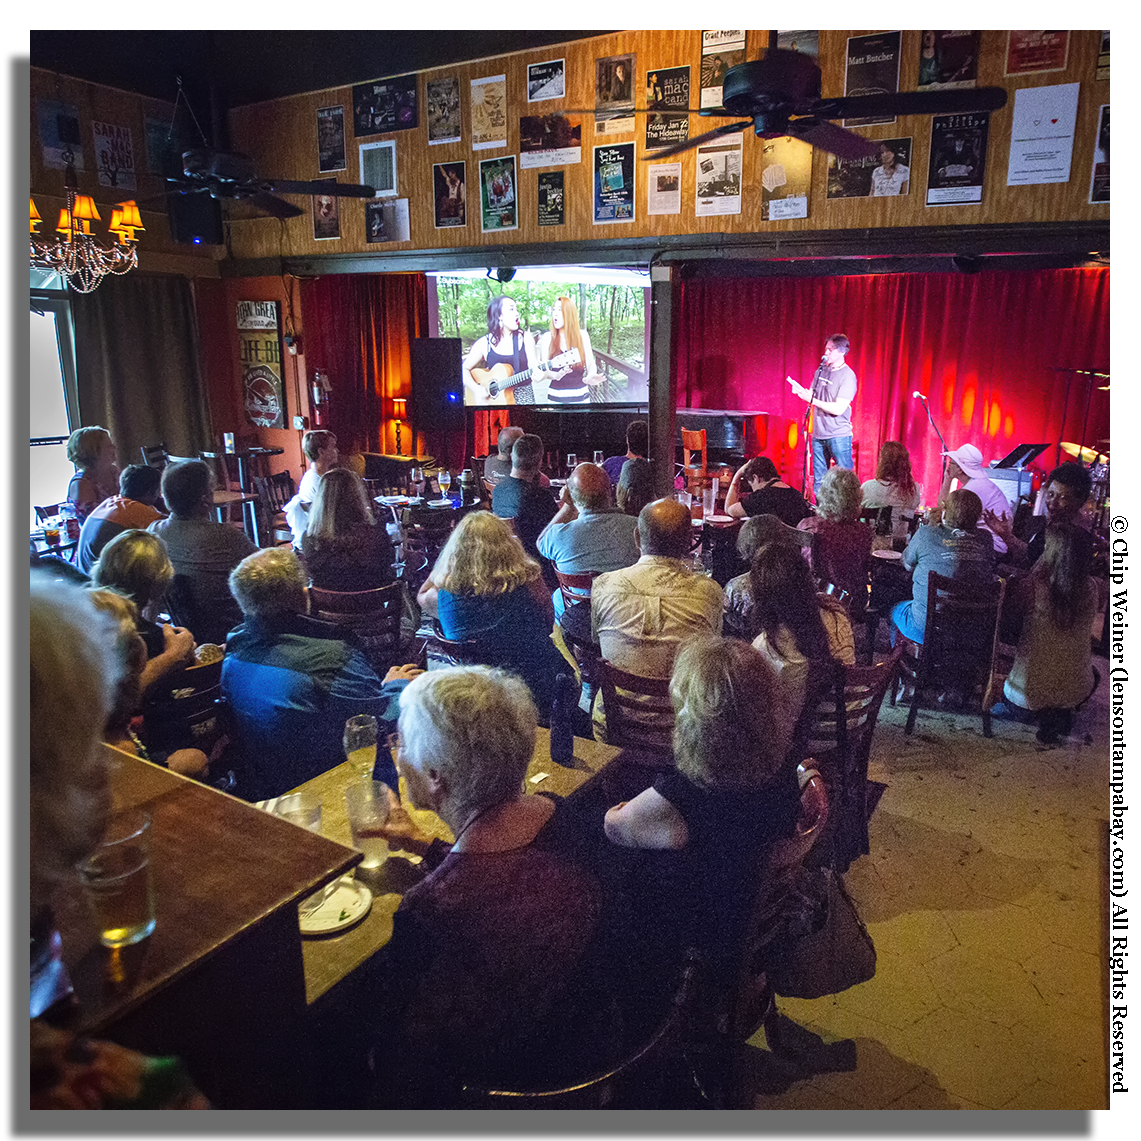 Fran Snyder with the Listening Room Network previews acts for potential hosts in August 2017 at the Hideaway listening room in St Petersburg